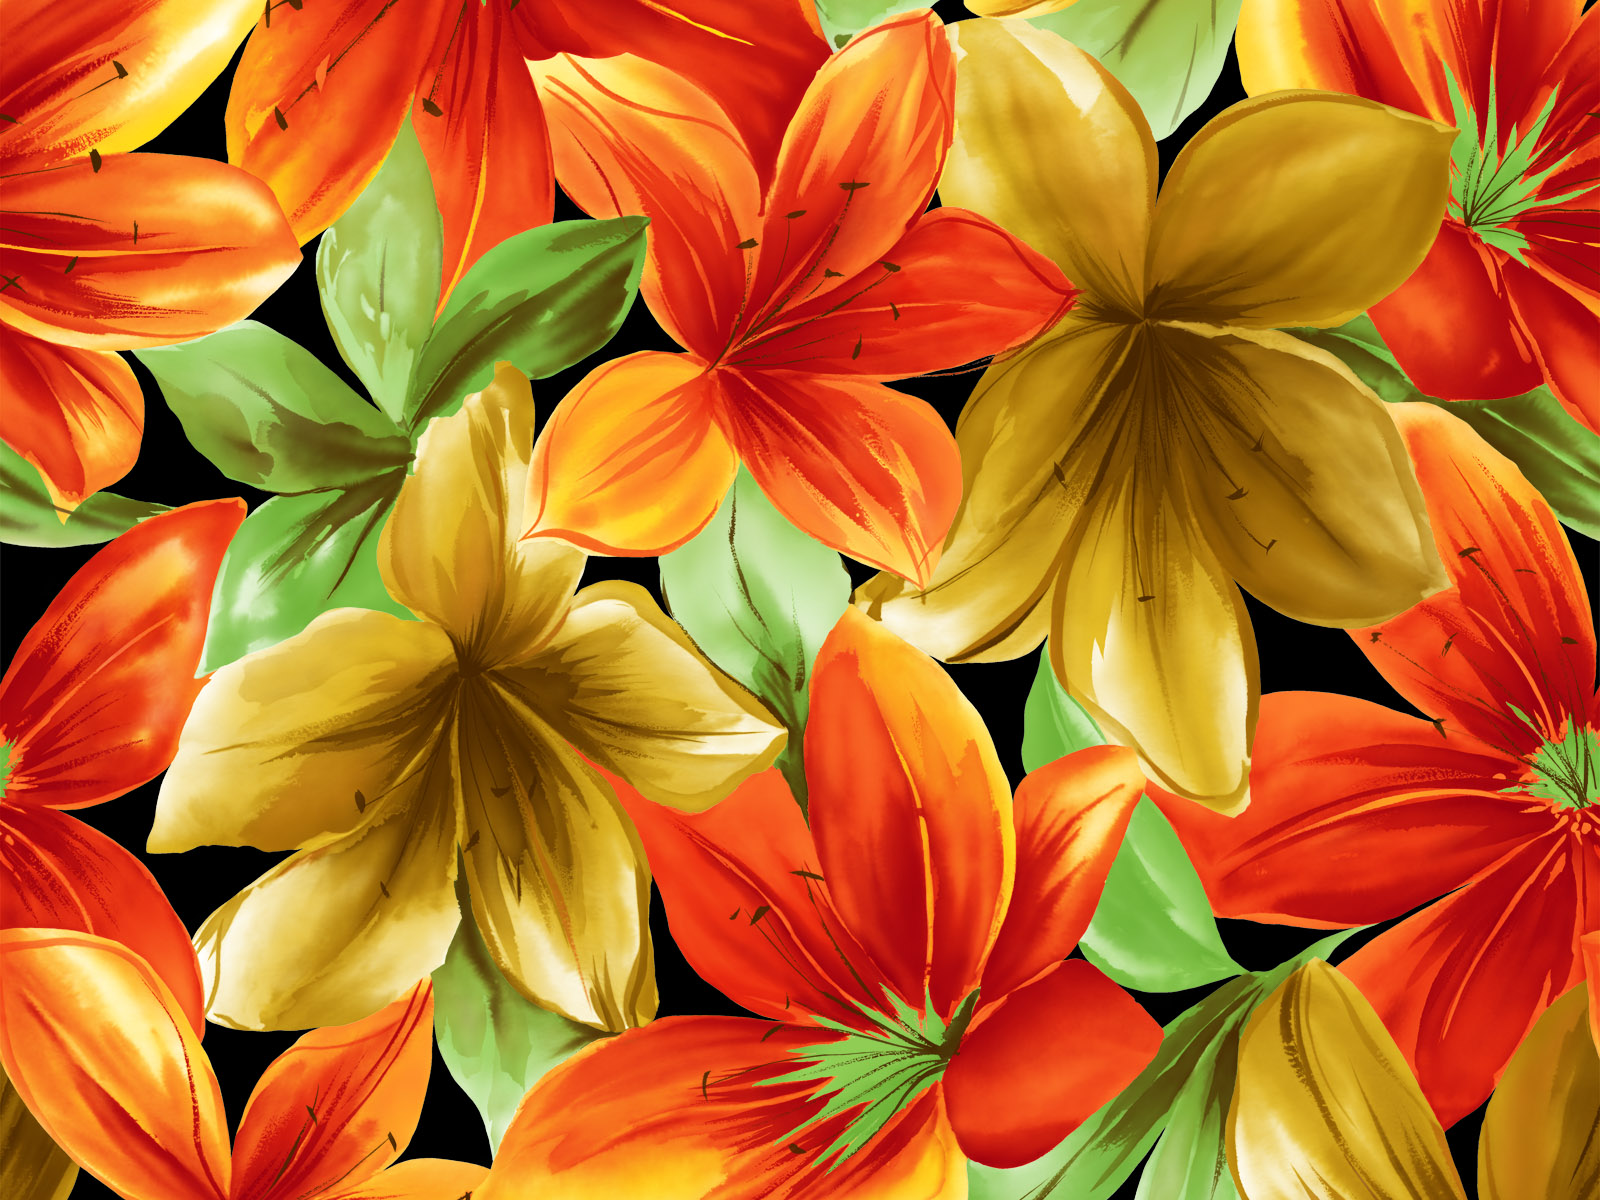 High Quality Desktop Wallpaper Downloads Amazing Flower Paintings